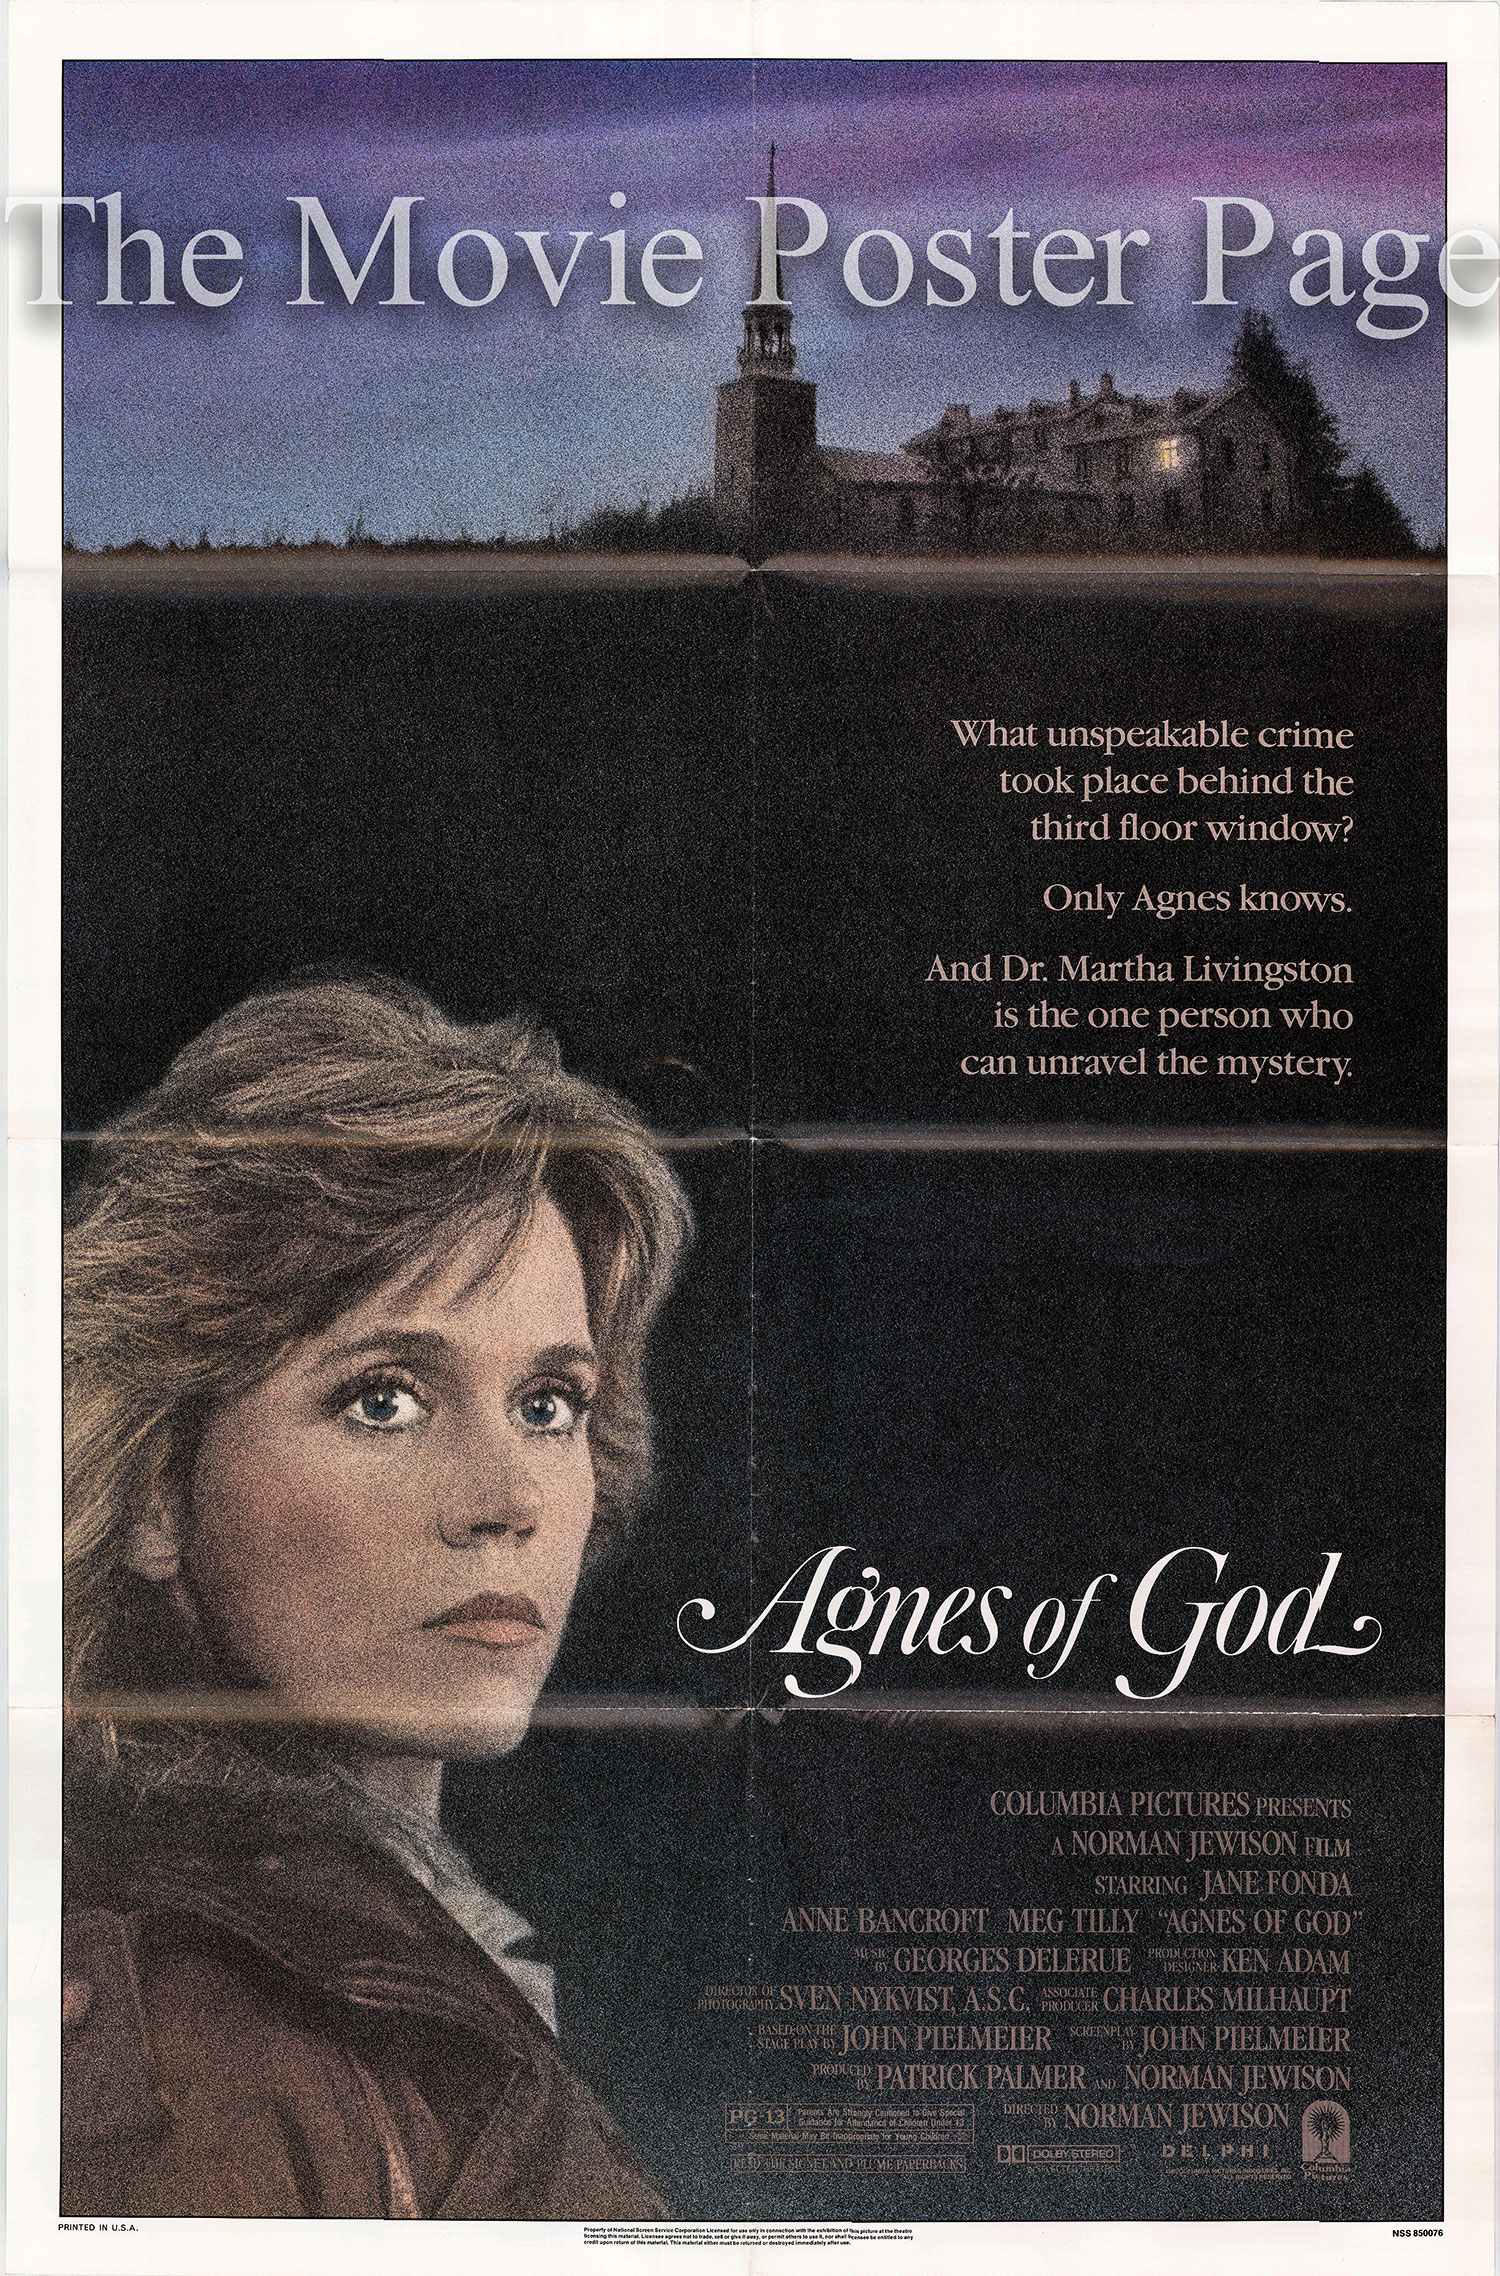 Pictured is a US promotional poster for the 1985 Norman Jewison film Agnes of God starring Jane Fonda.